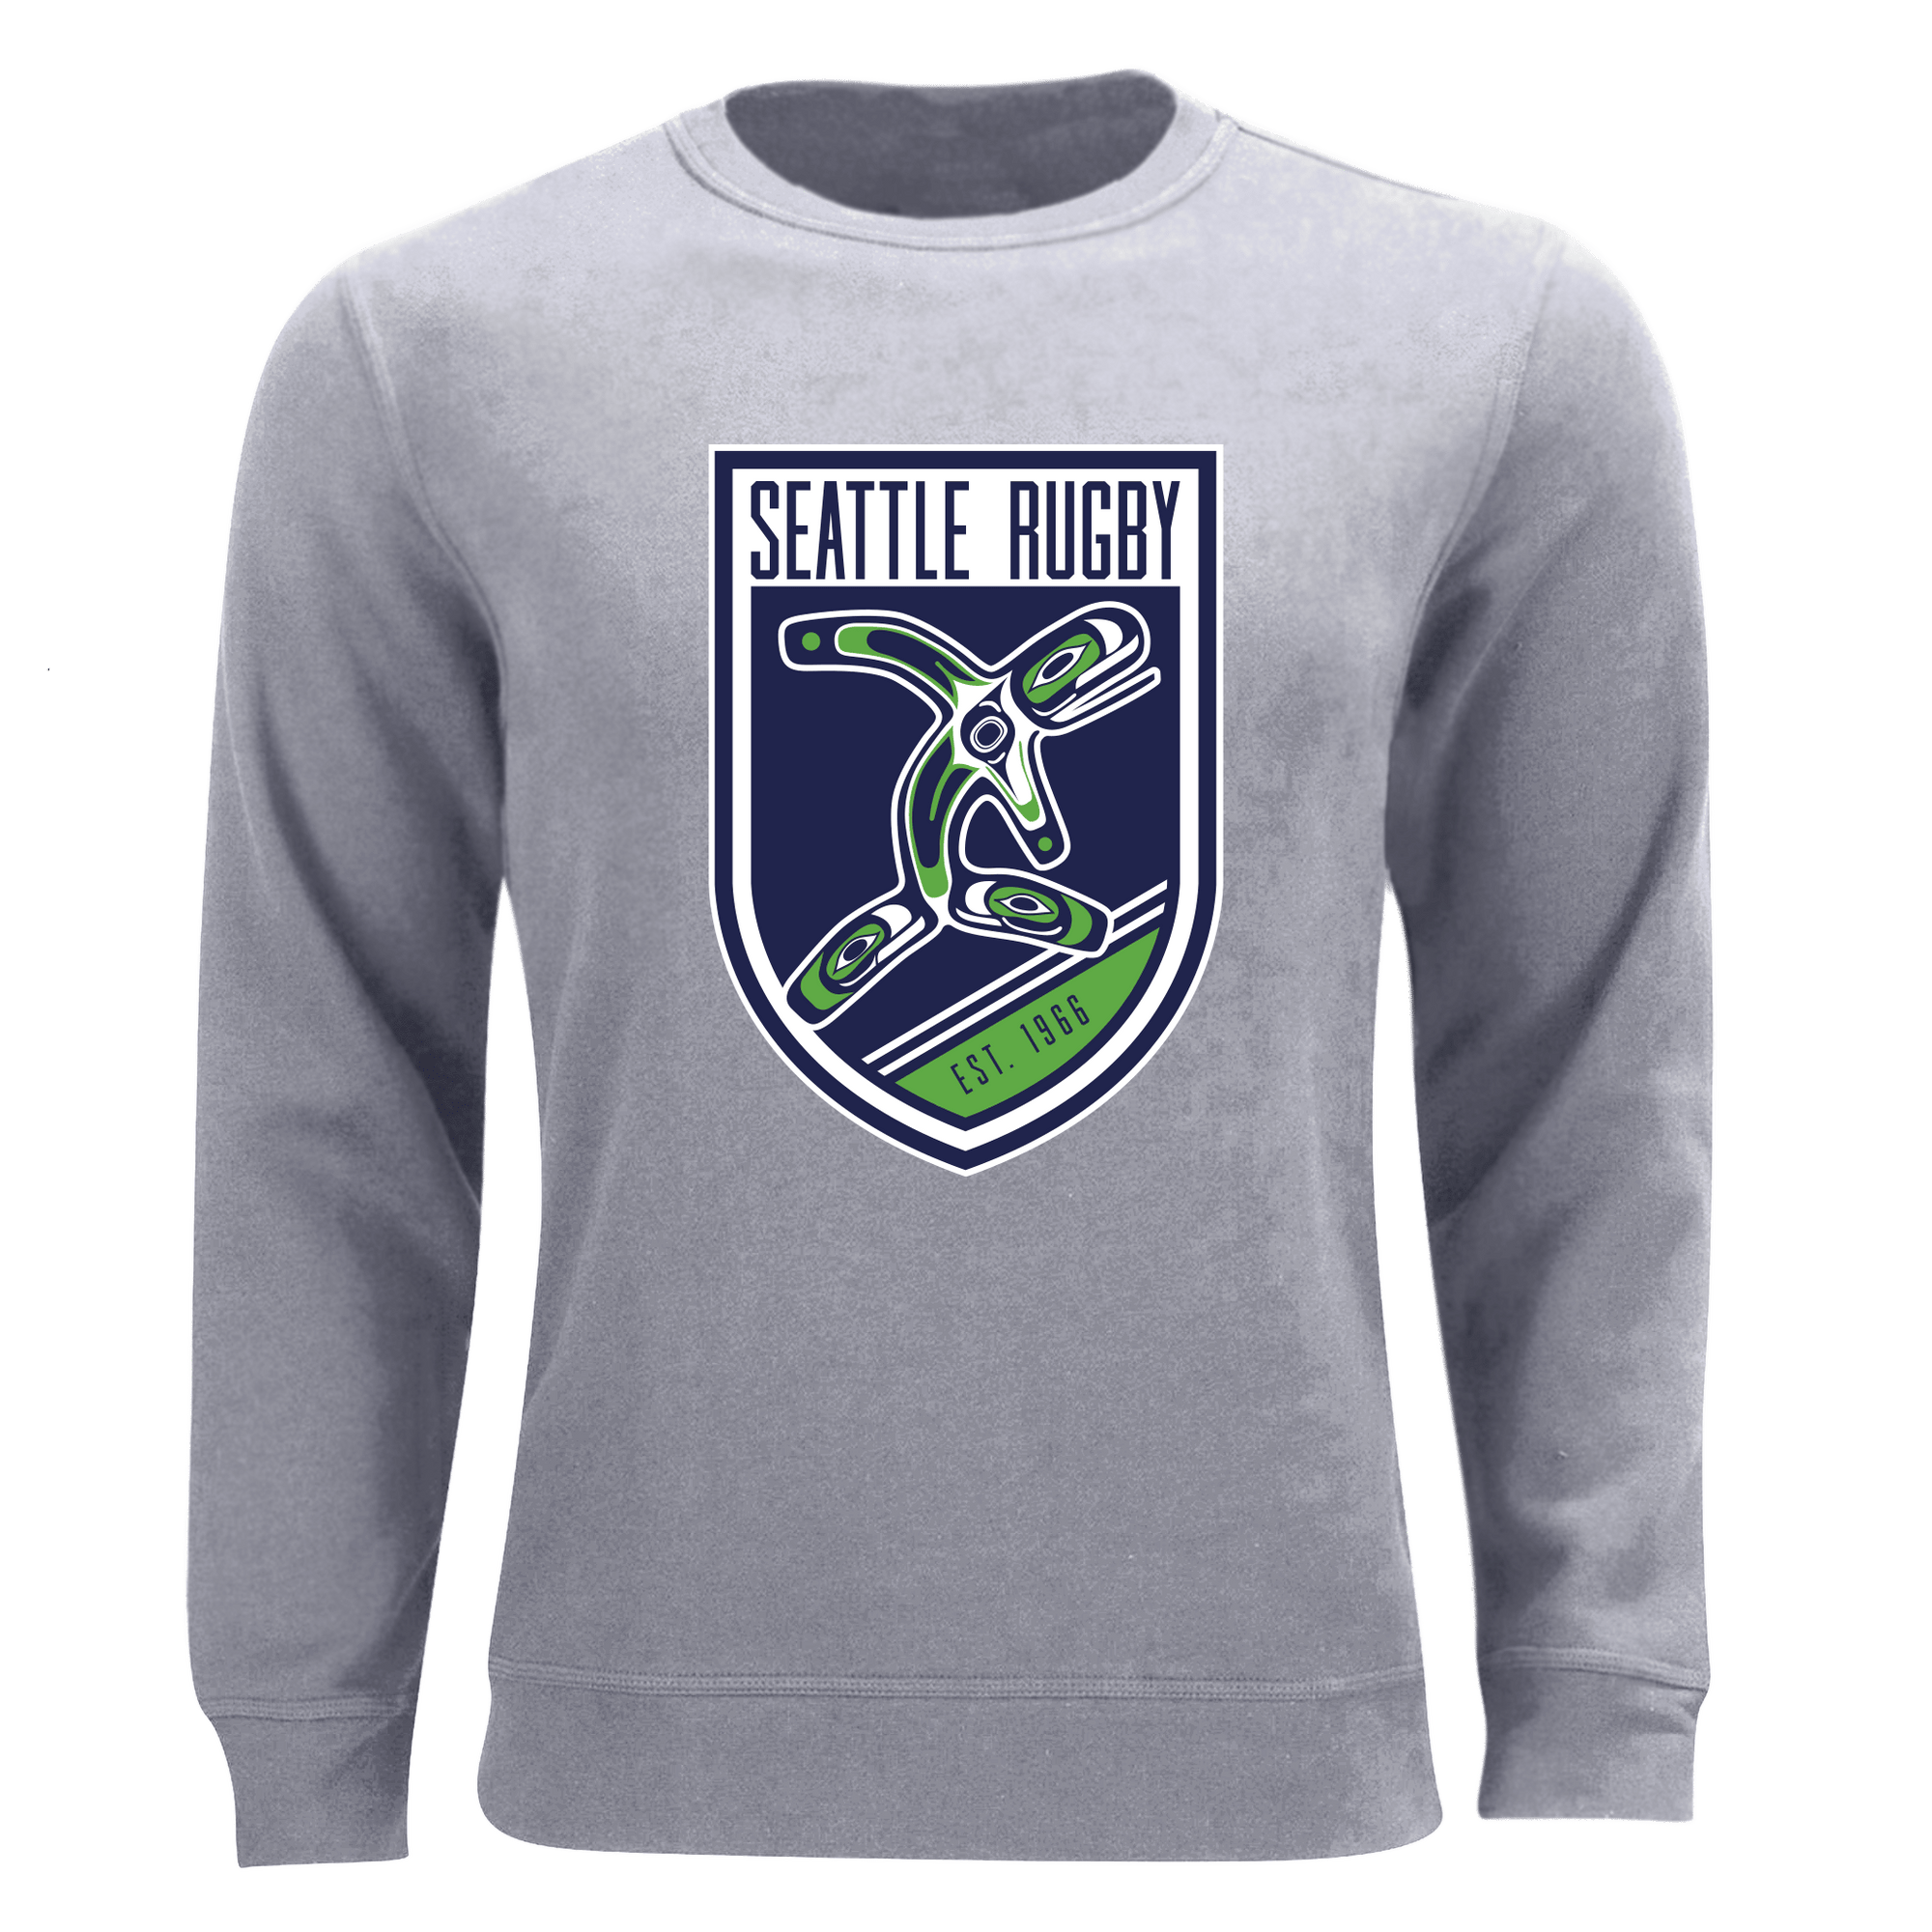 Seattle Rugby Club Sweatshirt Grey